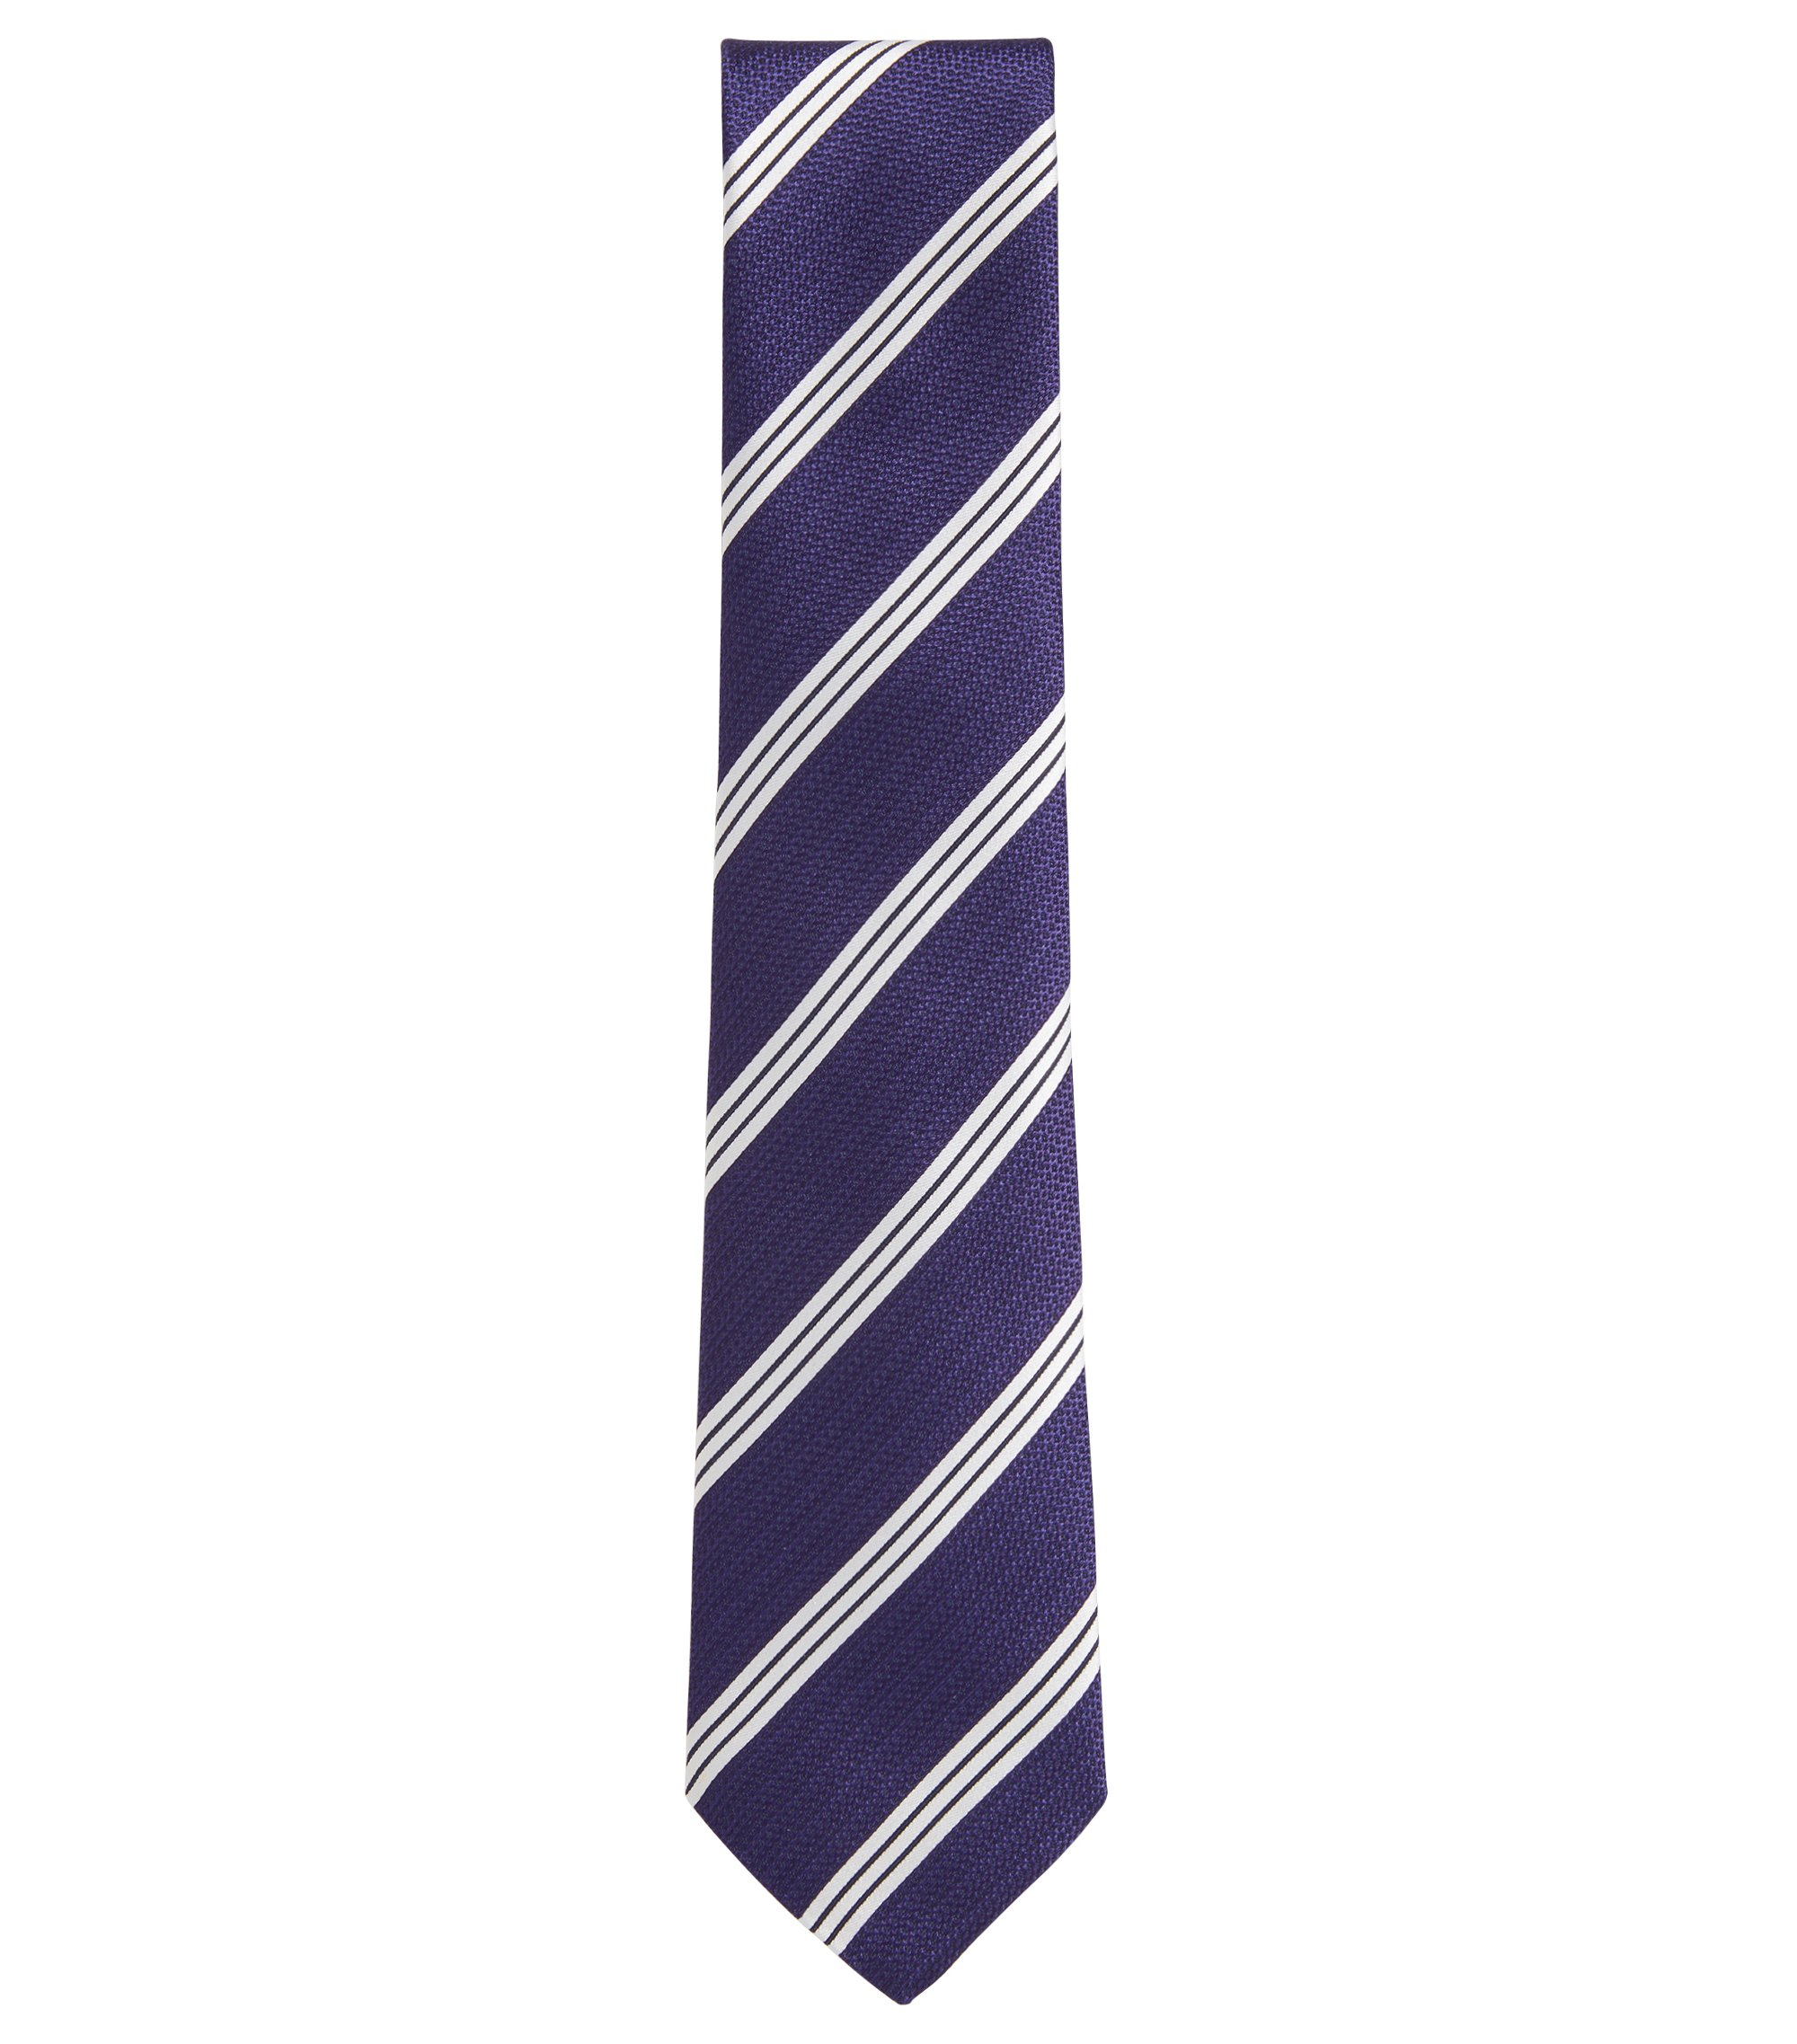 Striped Italian Silk Tie, Purple